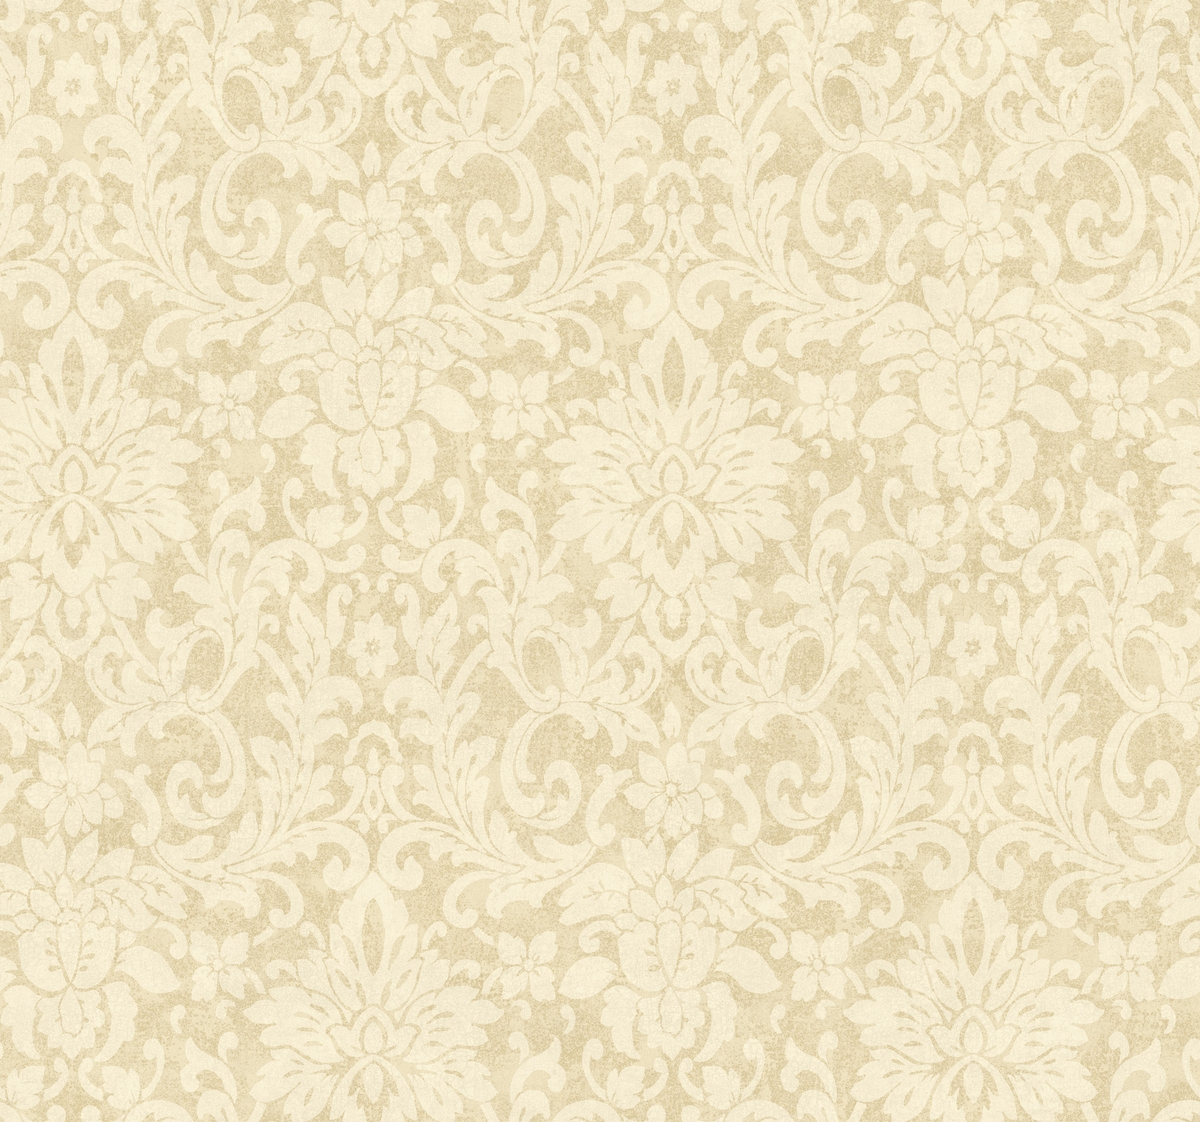 Floral Damask Wallpaper Wallpaper And Borders The Mural Store